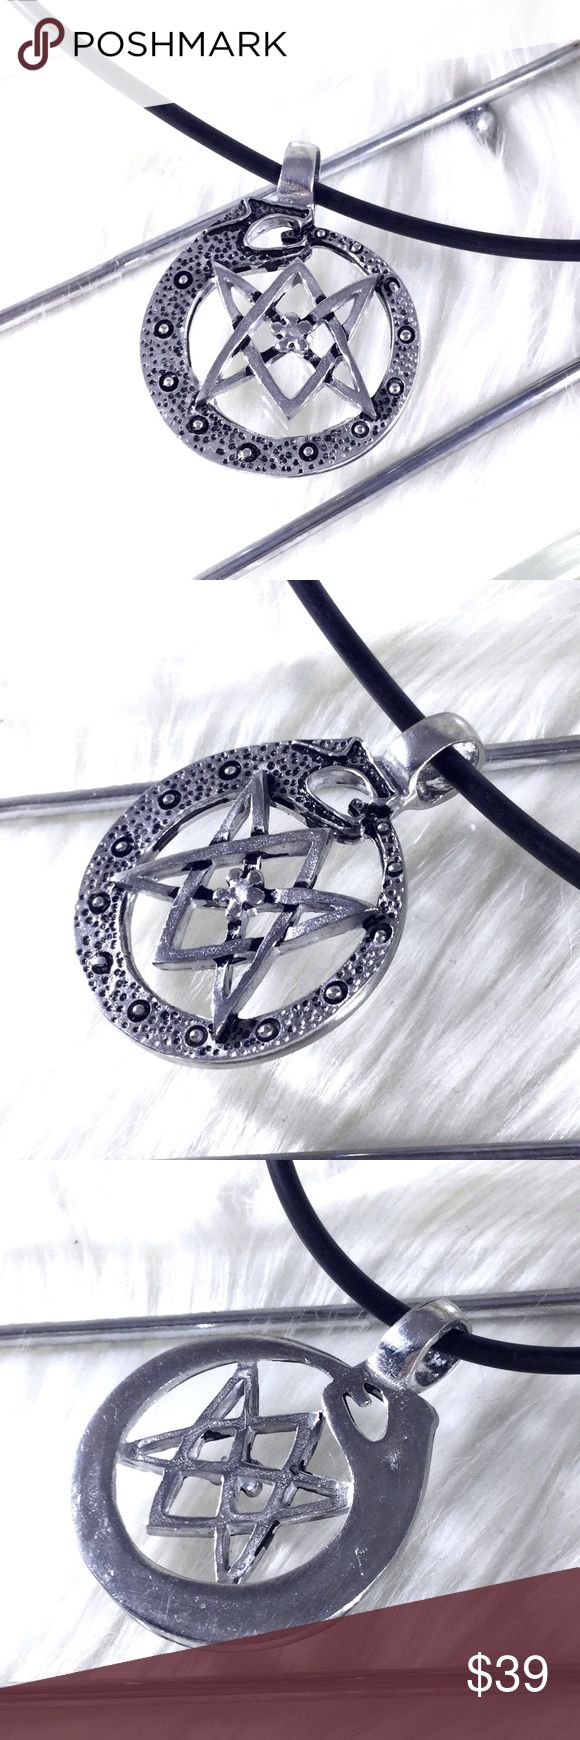 "Ouroboros Thelemic Unicursal Hexagram Necklace Heavy pewter pendant with leather cord. Thelema thelemite occult Magick symbol unicursal hexagram ouroborus ouroboros world Serpent with 5 petalled rose in center. 1.5"" x 2"". Artisan cast from the U.K.  I only have a few of these. They are amazing. Pagan witch Wicca Pentagram gothic.  🌟 Save the most with bundles. I offer 25% OFF on bundles of 2+ items. I accept reasonable offers on single items & bundles. NO trades/holds/lowball offers…"